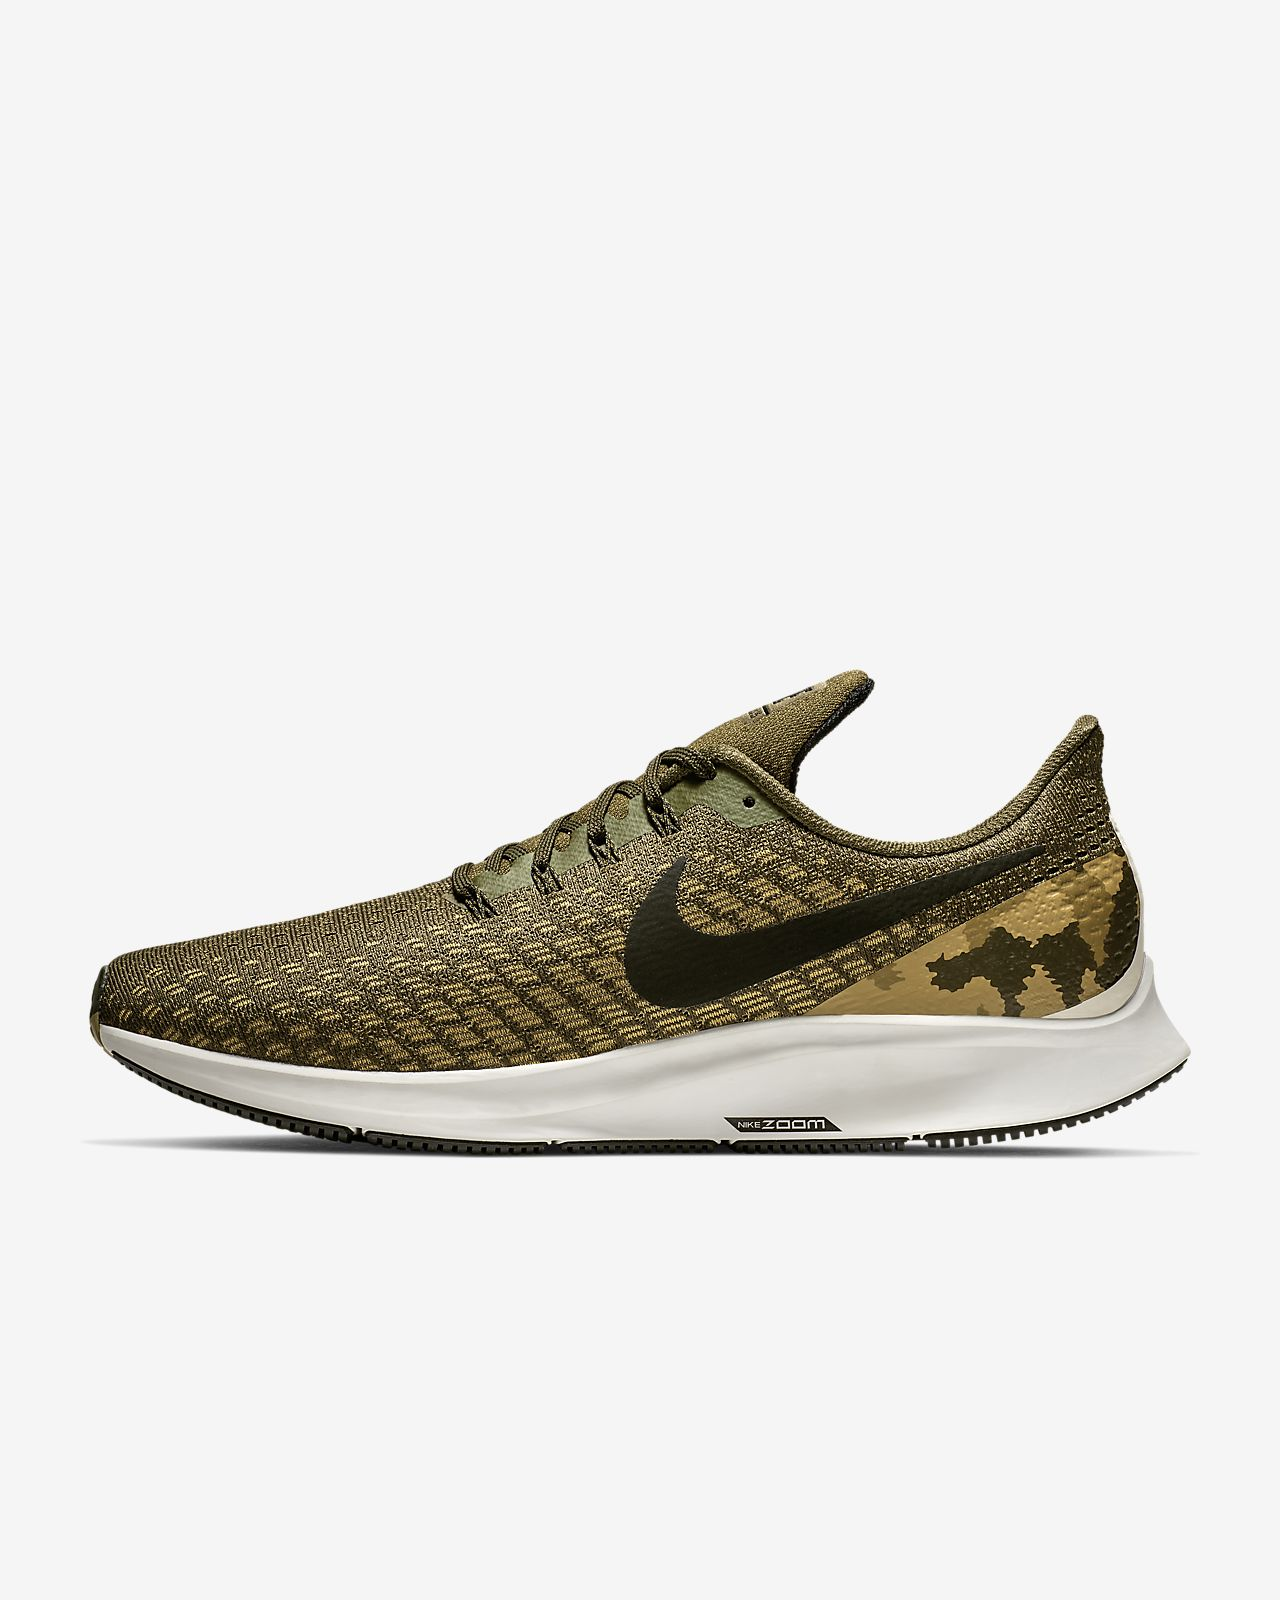 meet 7e2f2 72f29 Chaussure de running camouflage Nike Air Zoom Pegasus 35 pour Homme